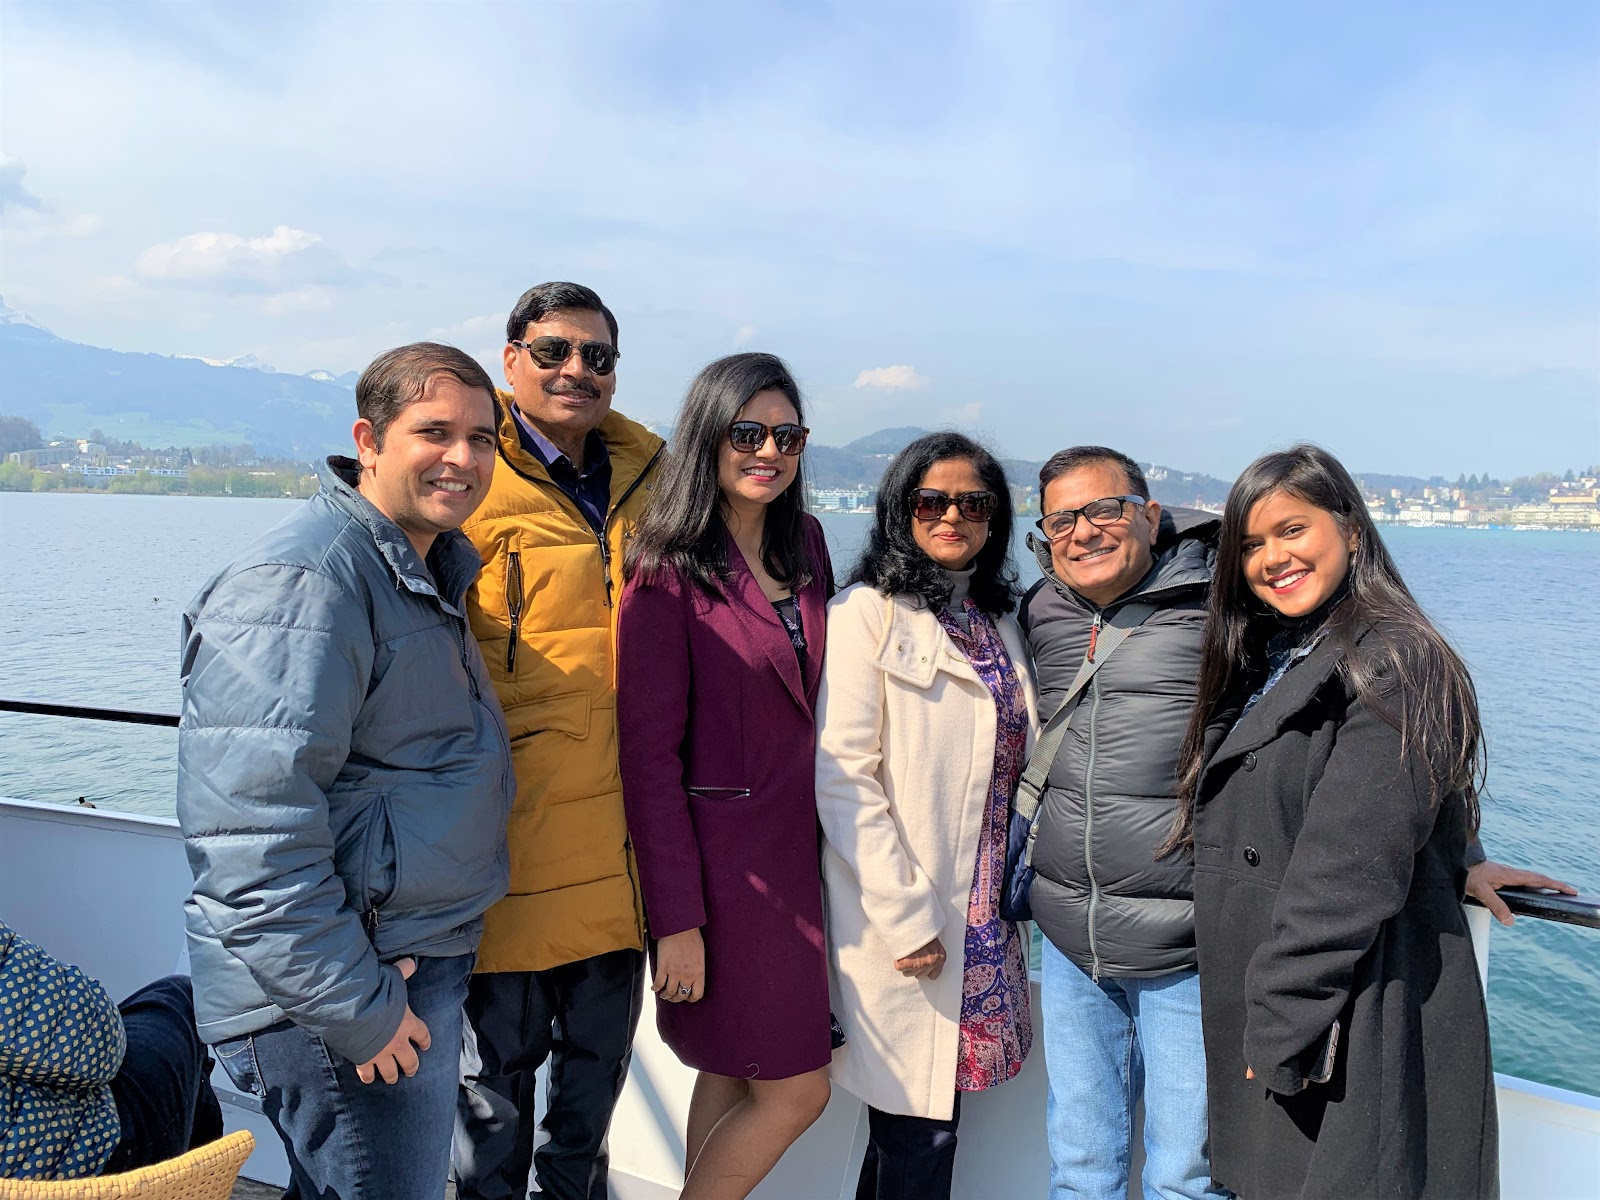 Ferry on Lake Lucerne - How to visit Mt. Rigi